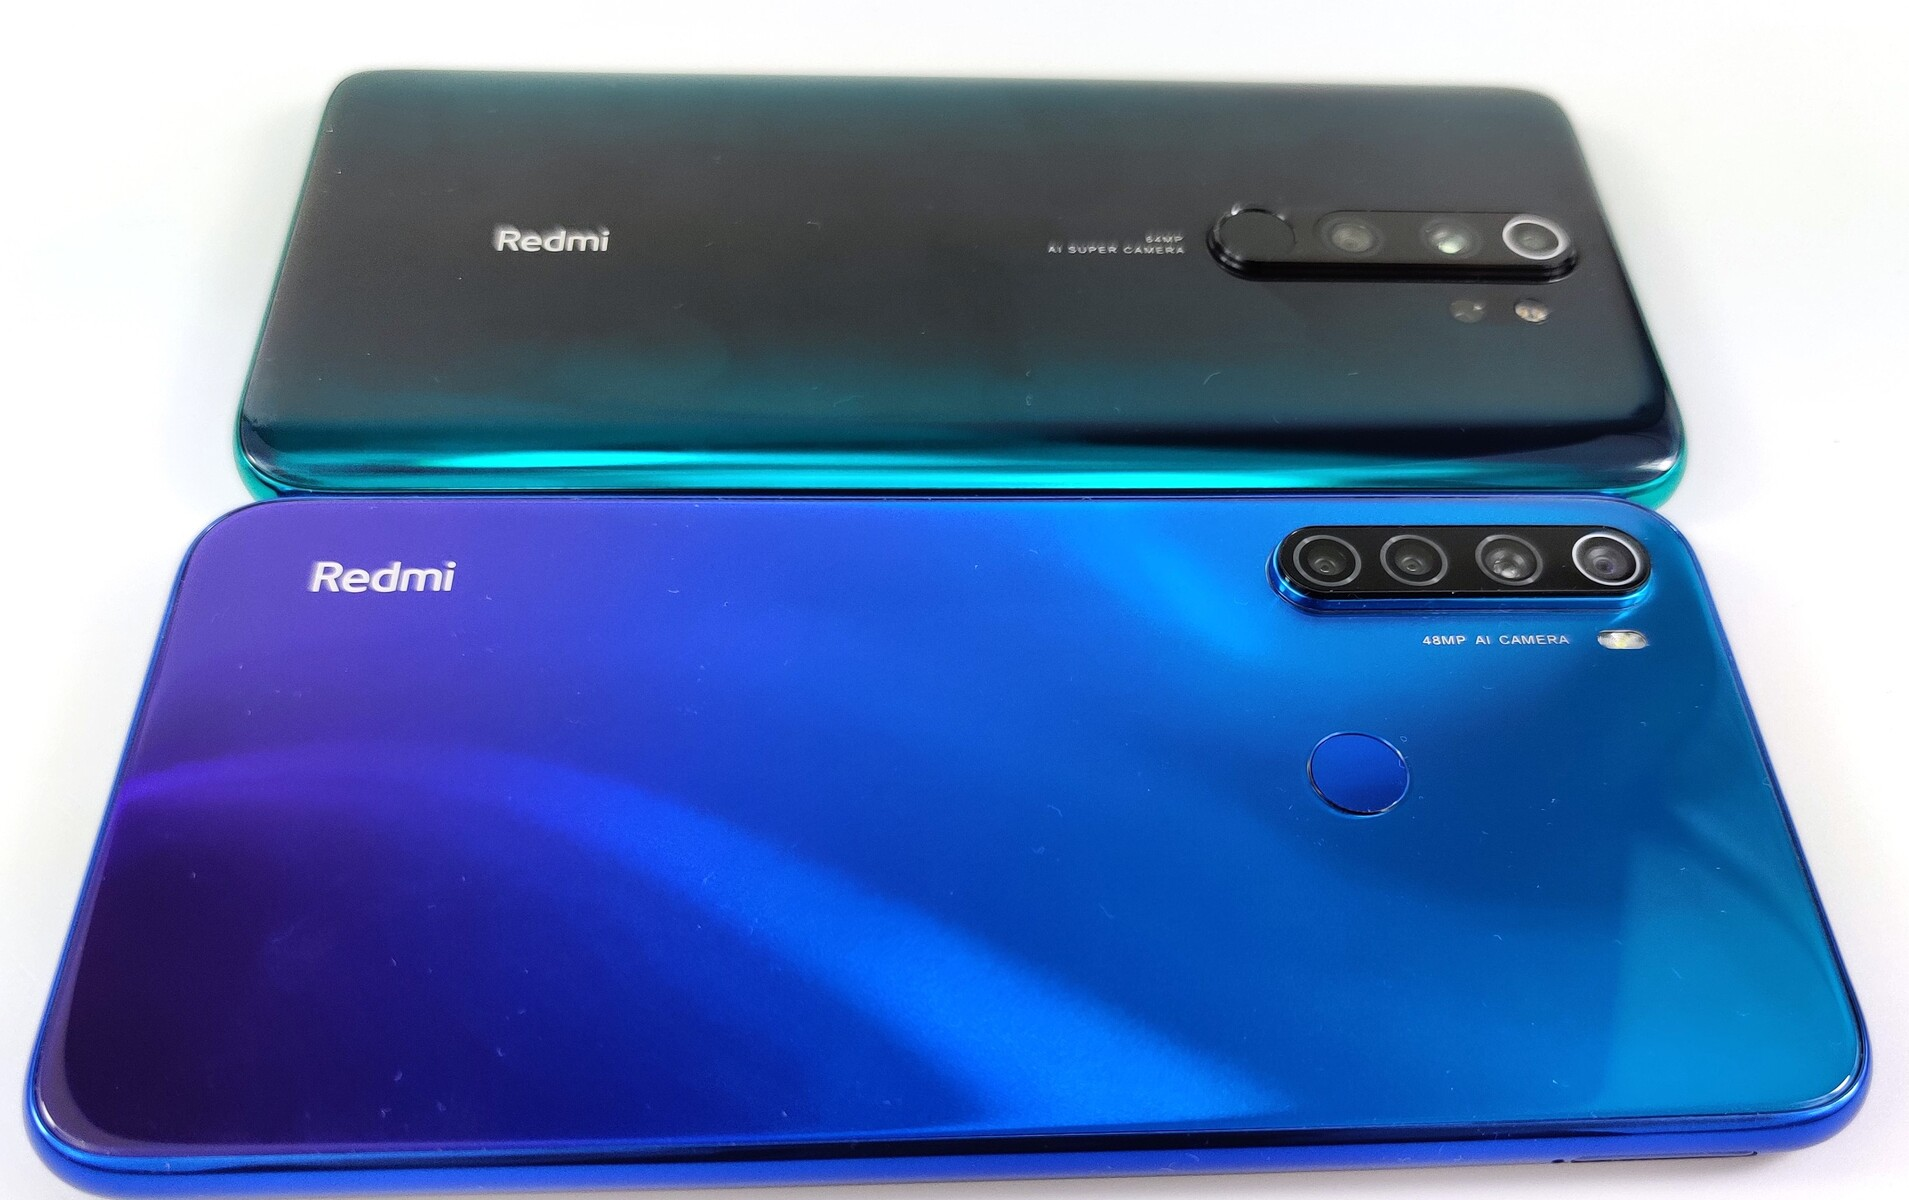 Redmi Note 8 Smartphone Camera Review: With the Pro, the Note 8 ...